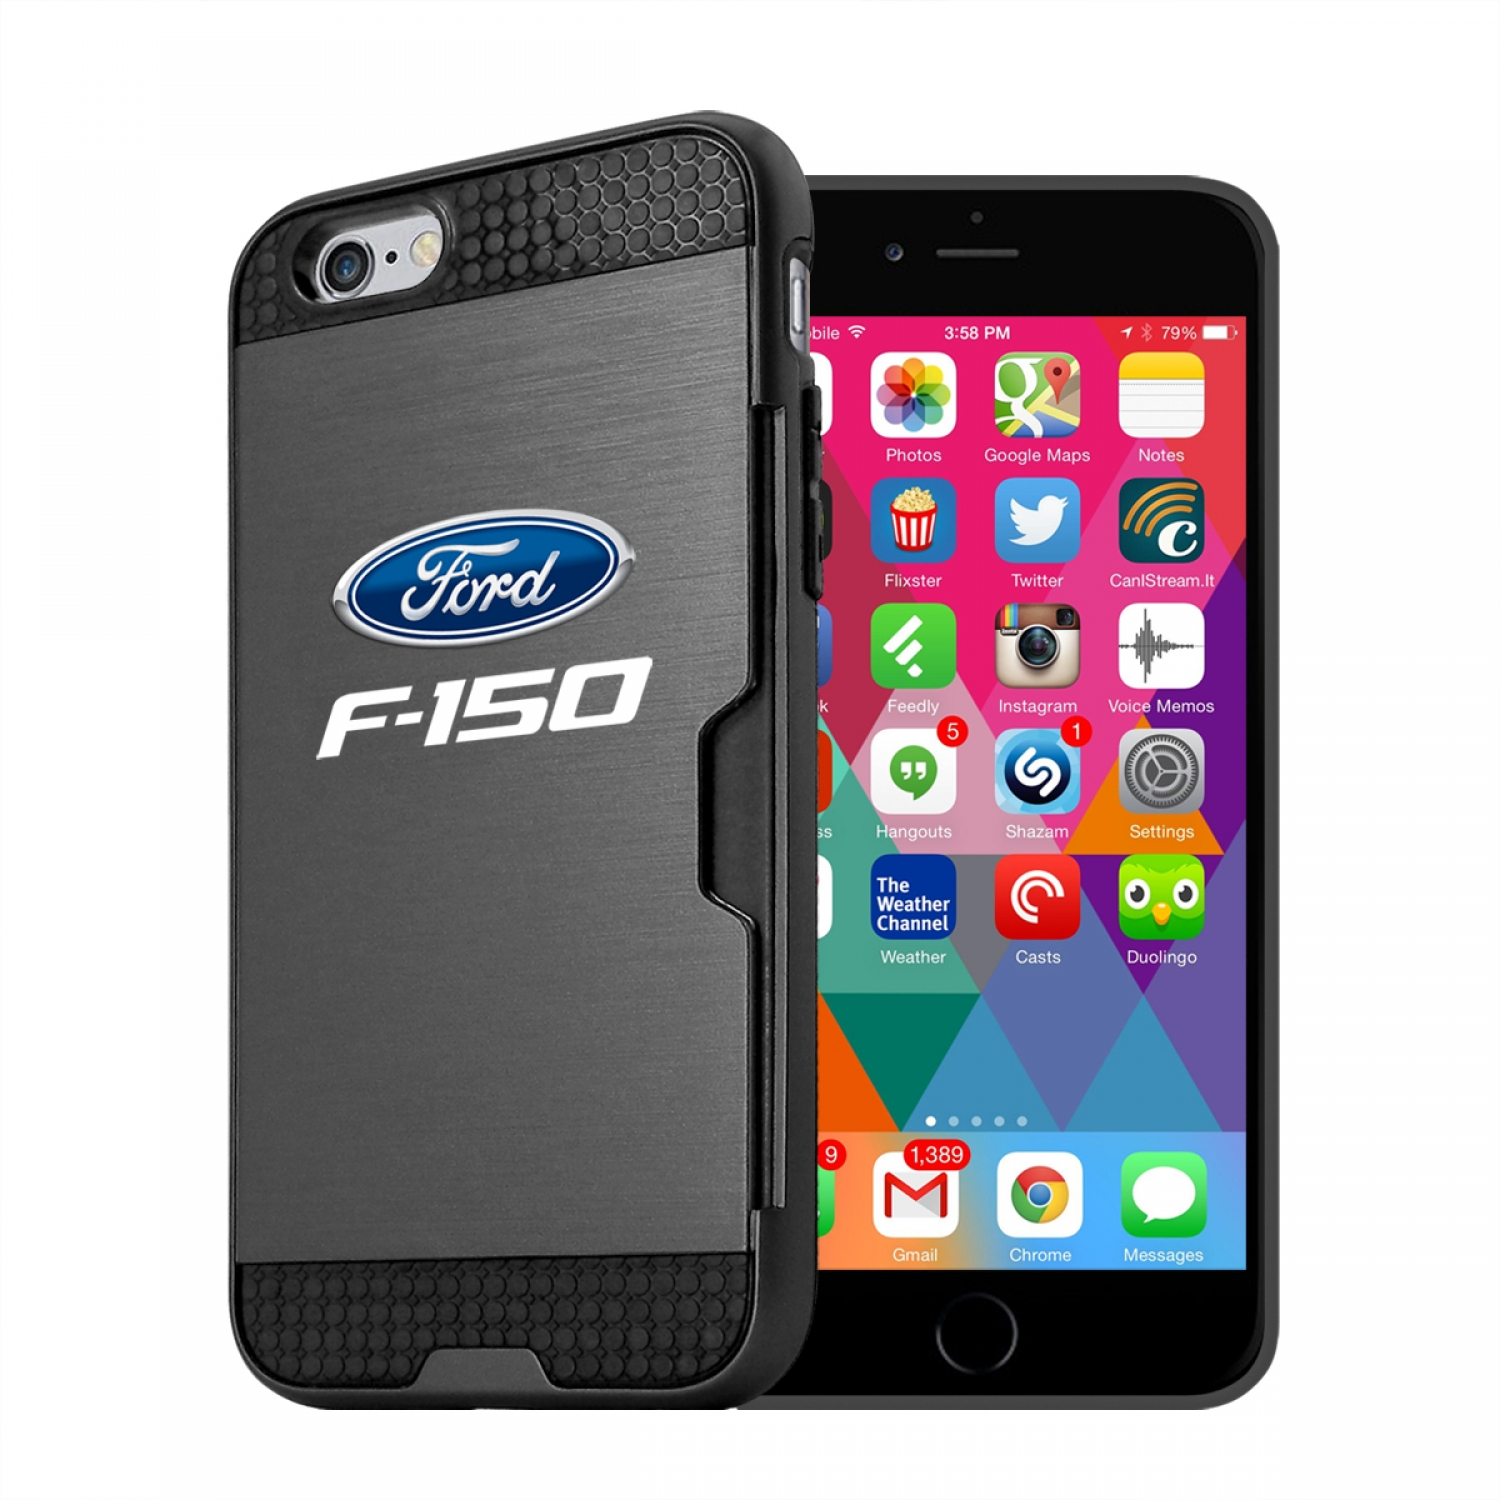 Ford F-150 iPhone 6 6s Ultra Thin TPU Black Phone Case with Credit Card Slot Wallet